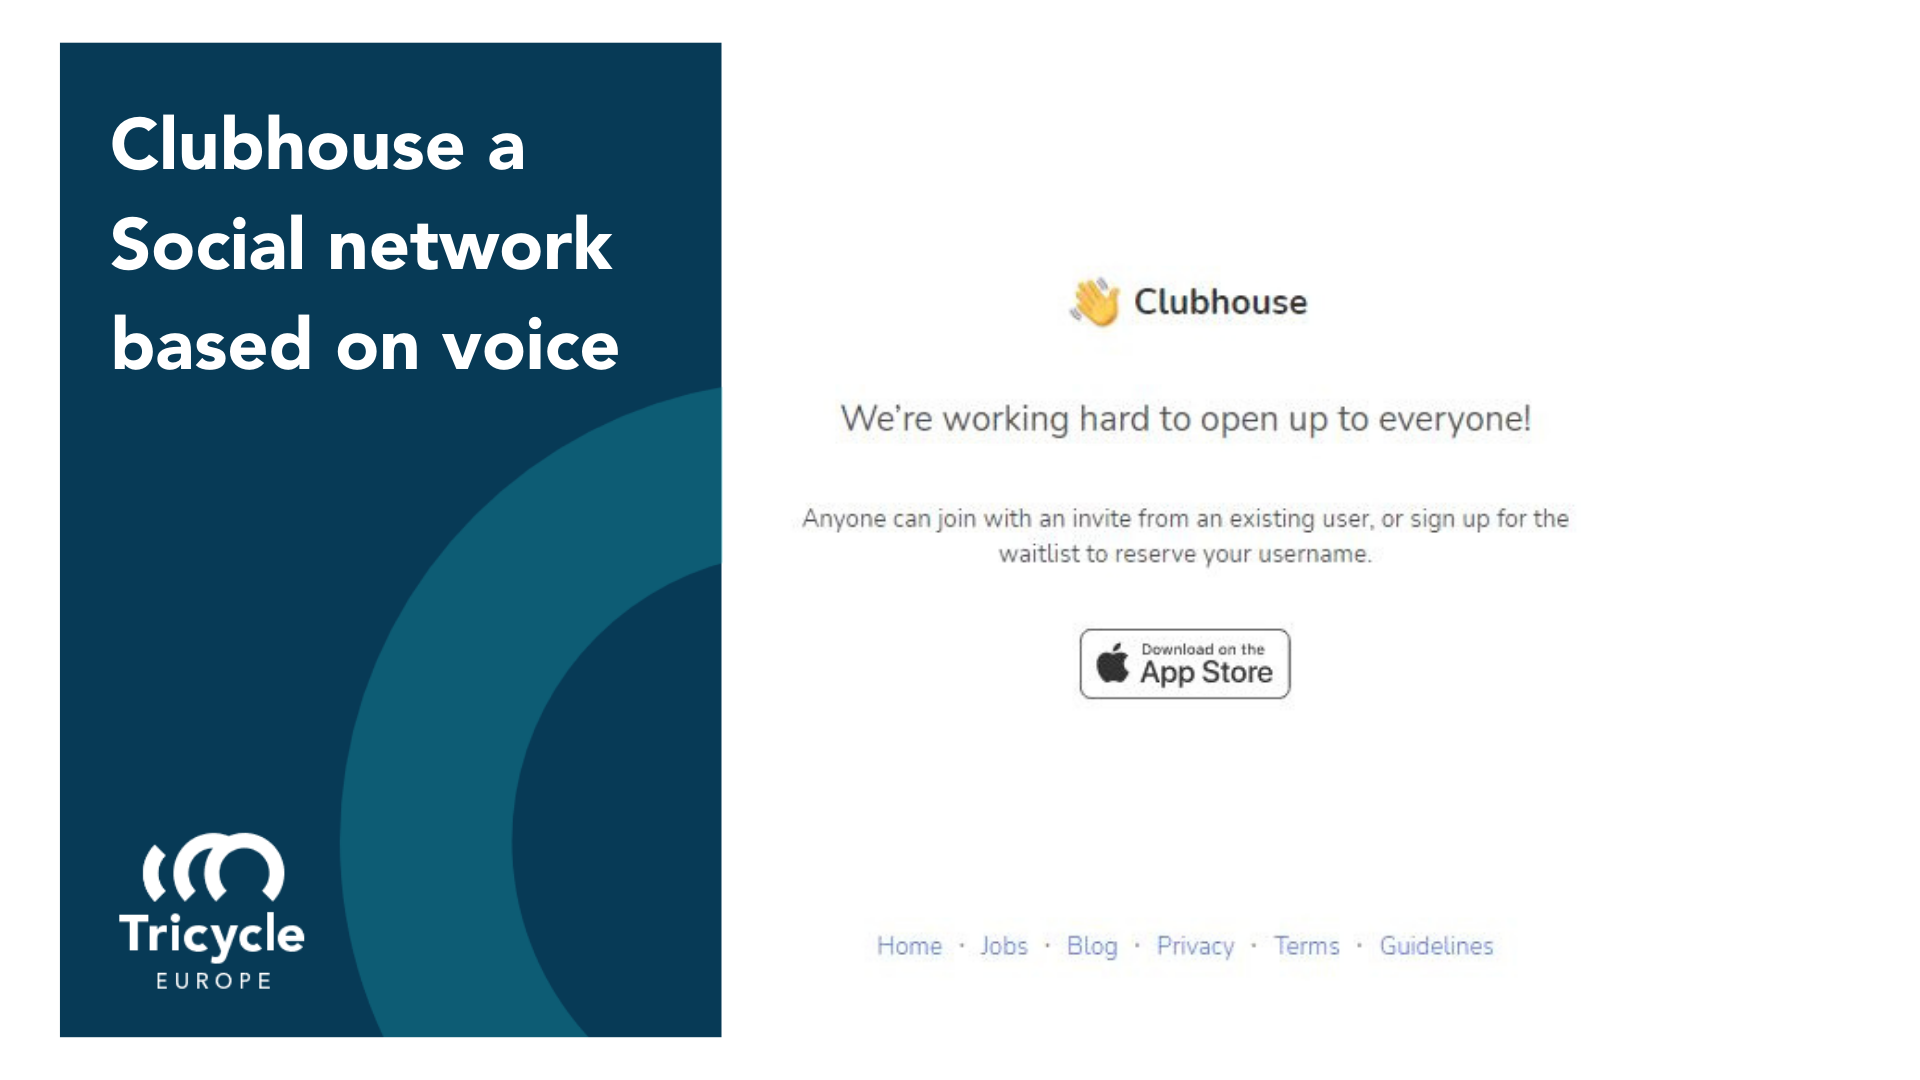 Clubhouse a Social network based on voice